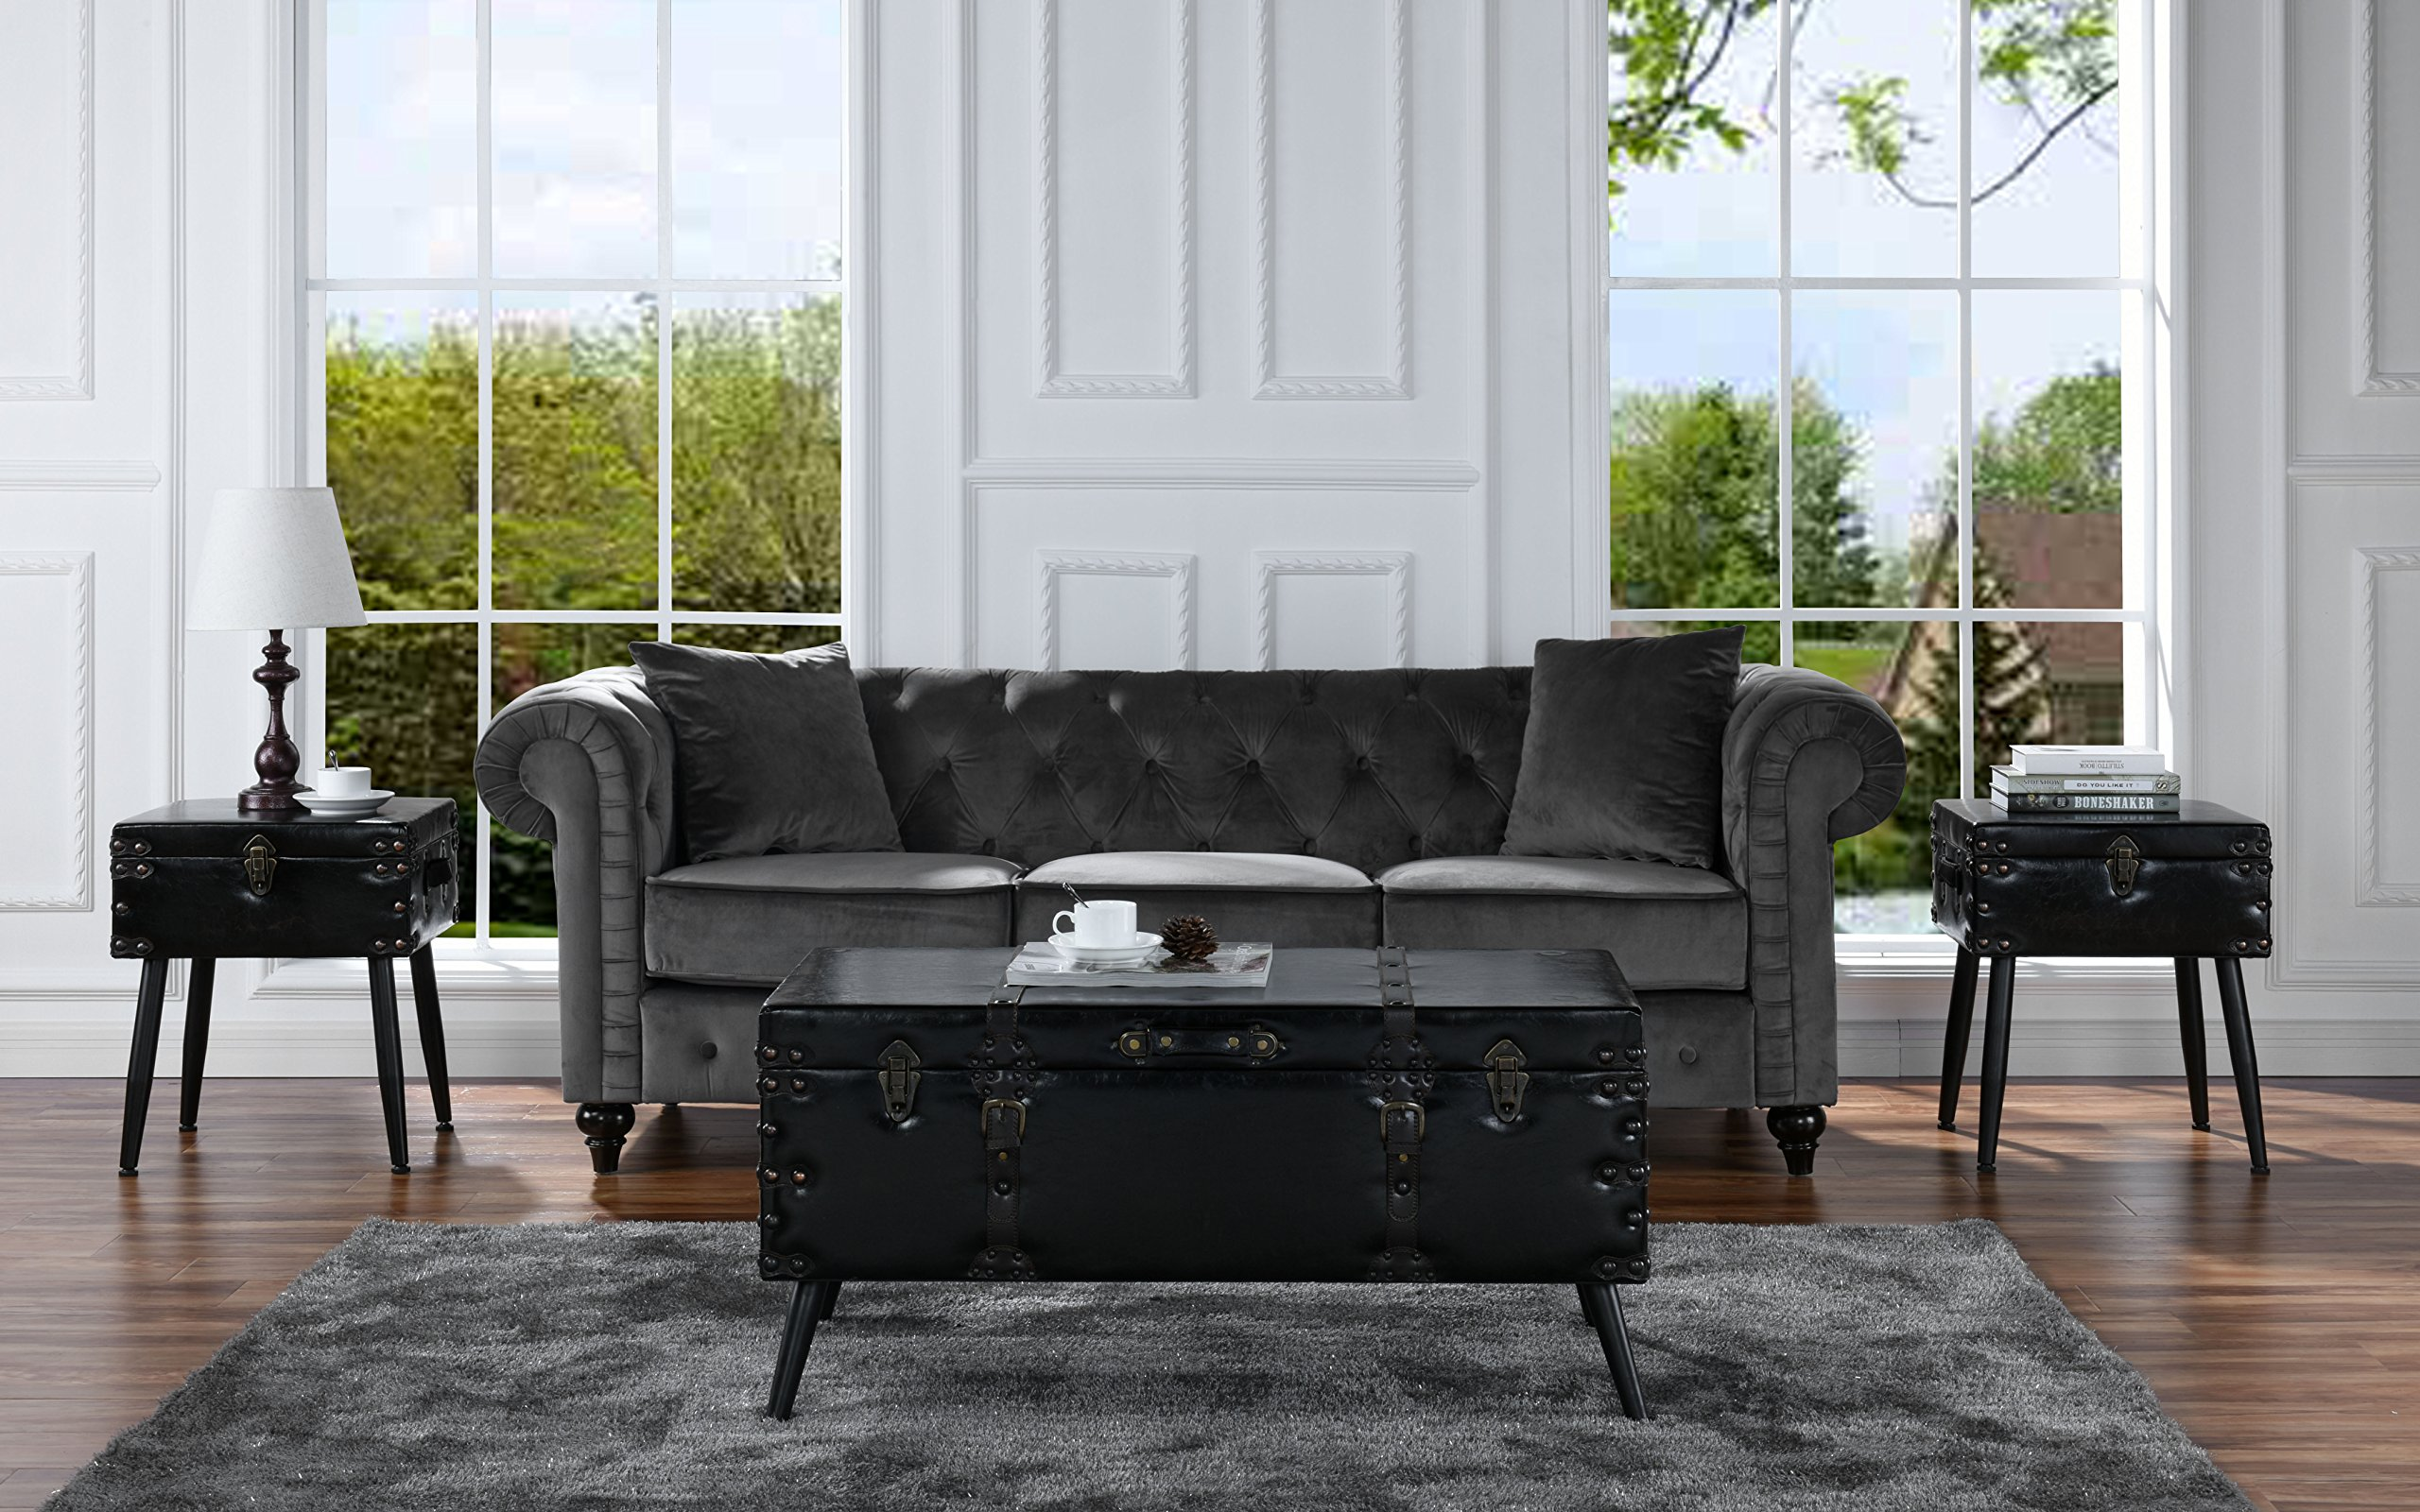 3 Piece Faux Leather Upholstered Coffee and Side Tables Living Room Set (Espresso)